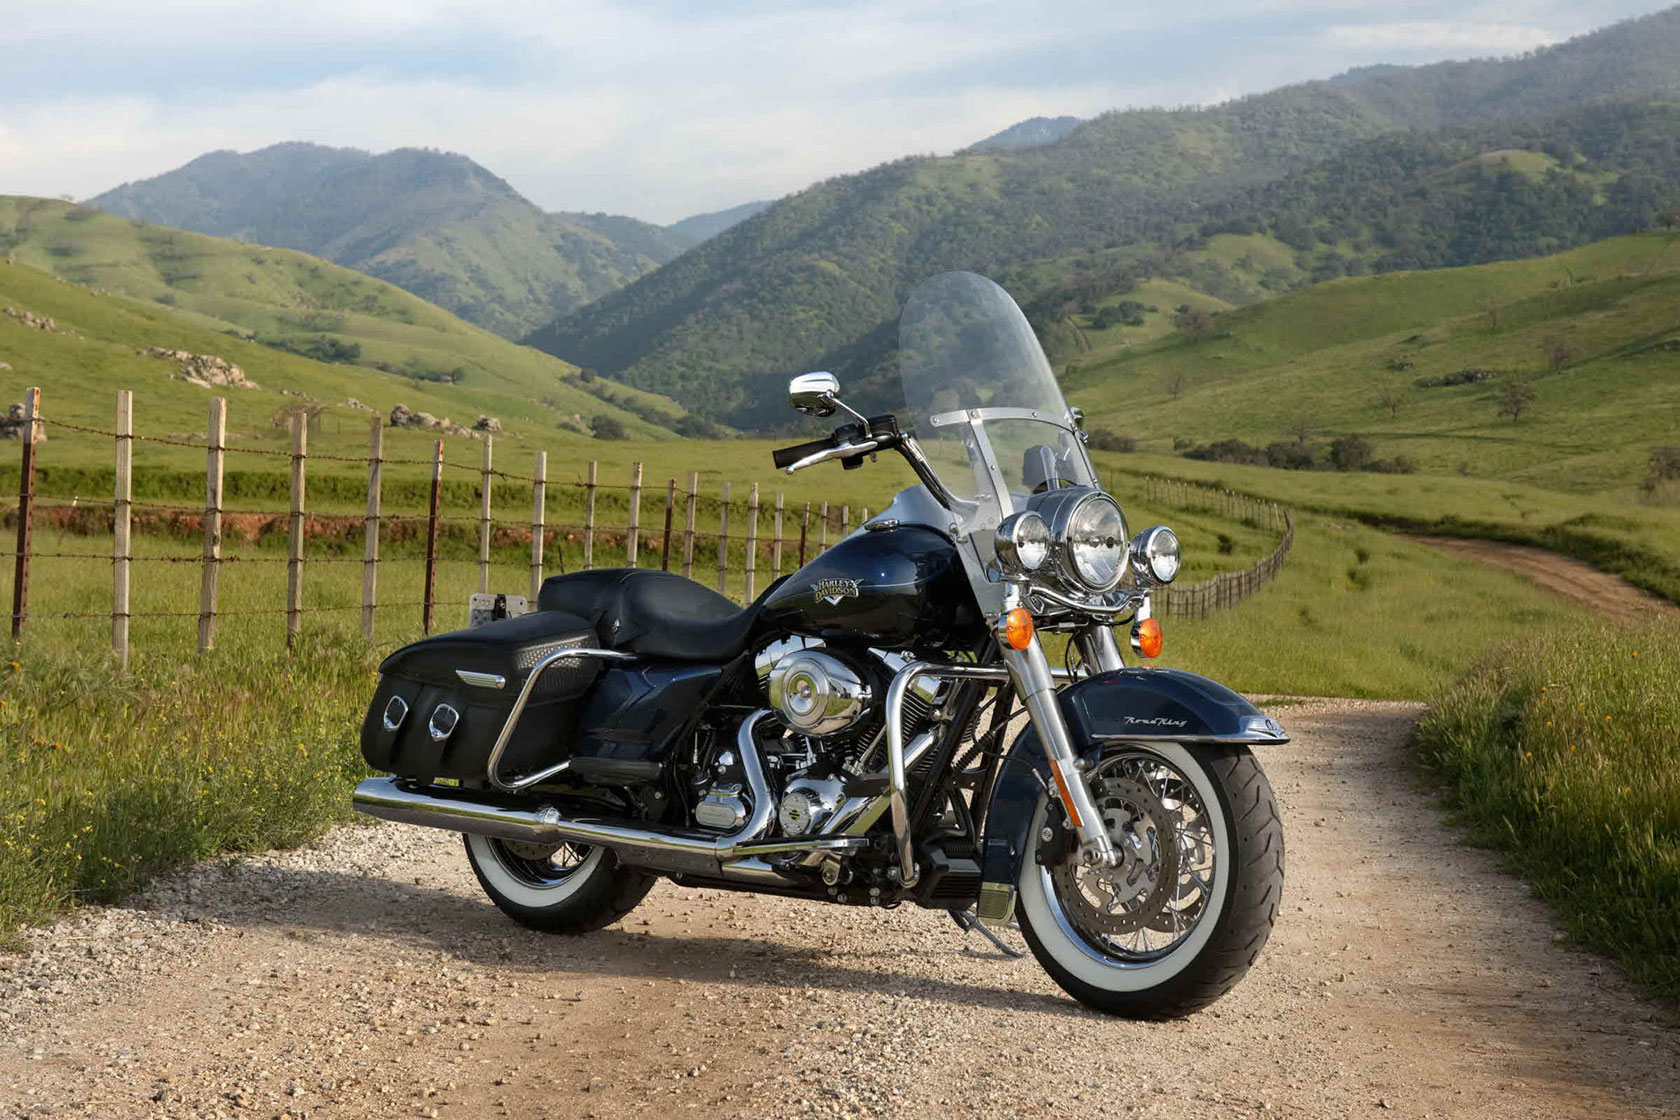 2014 Harley Davidson Wiring Diagram Will Be A Thing 1986 Heritage Softail Road King Classic Specs 2011 2012 Radio Street Glide